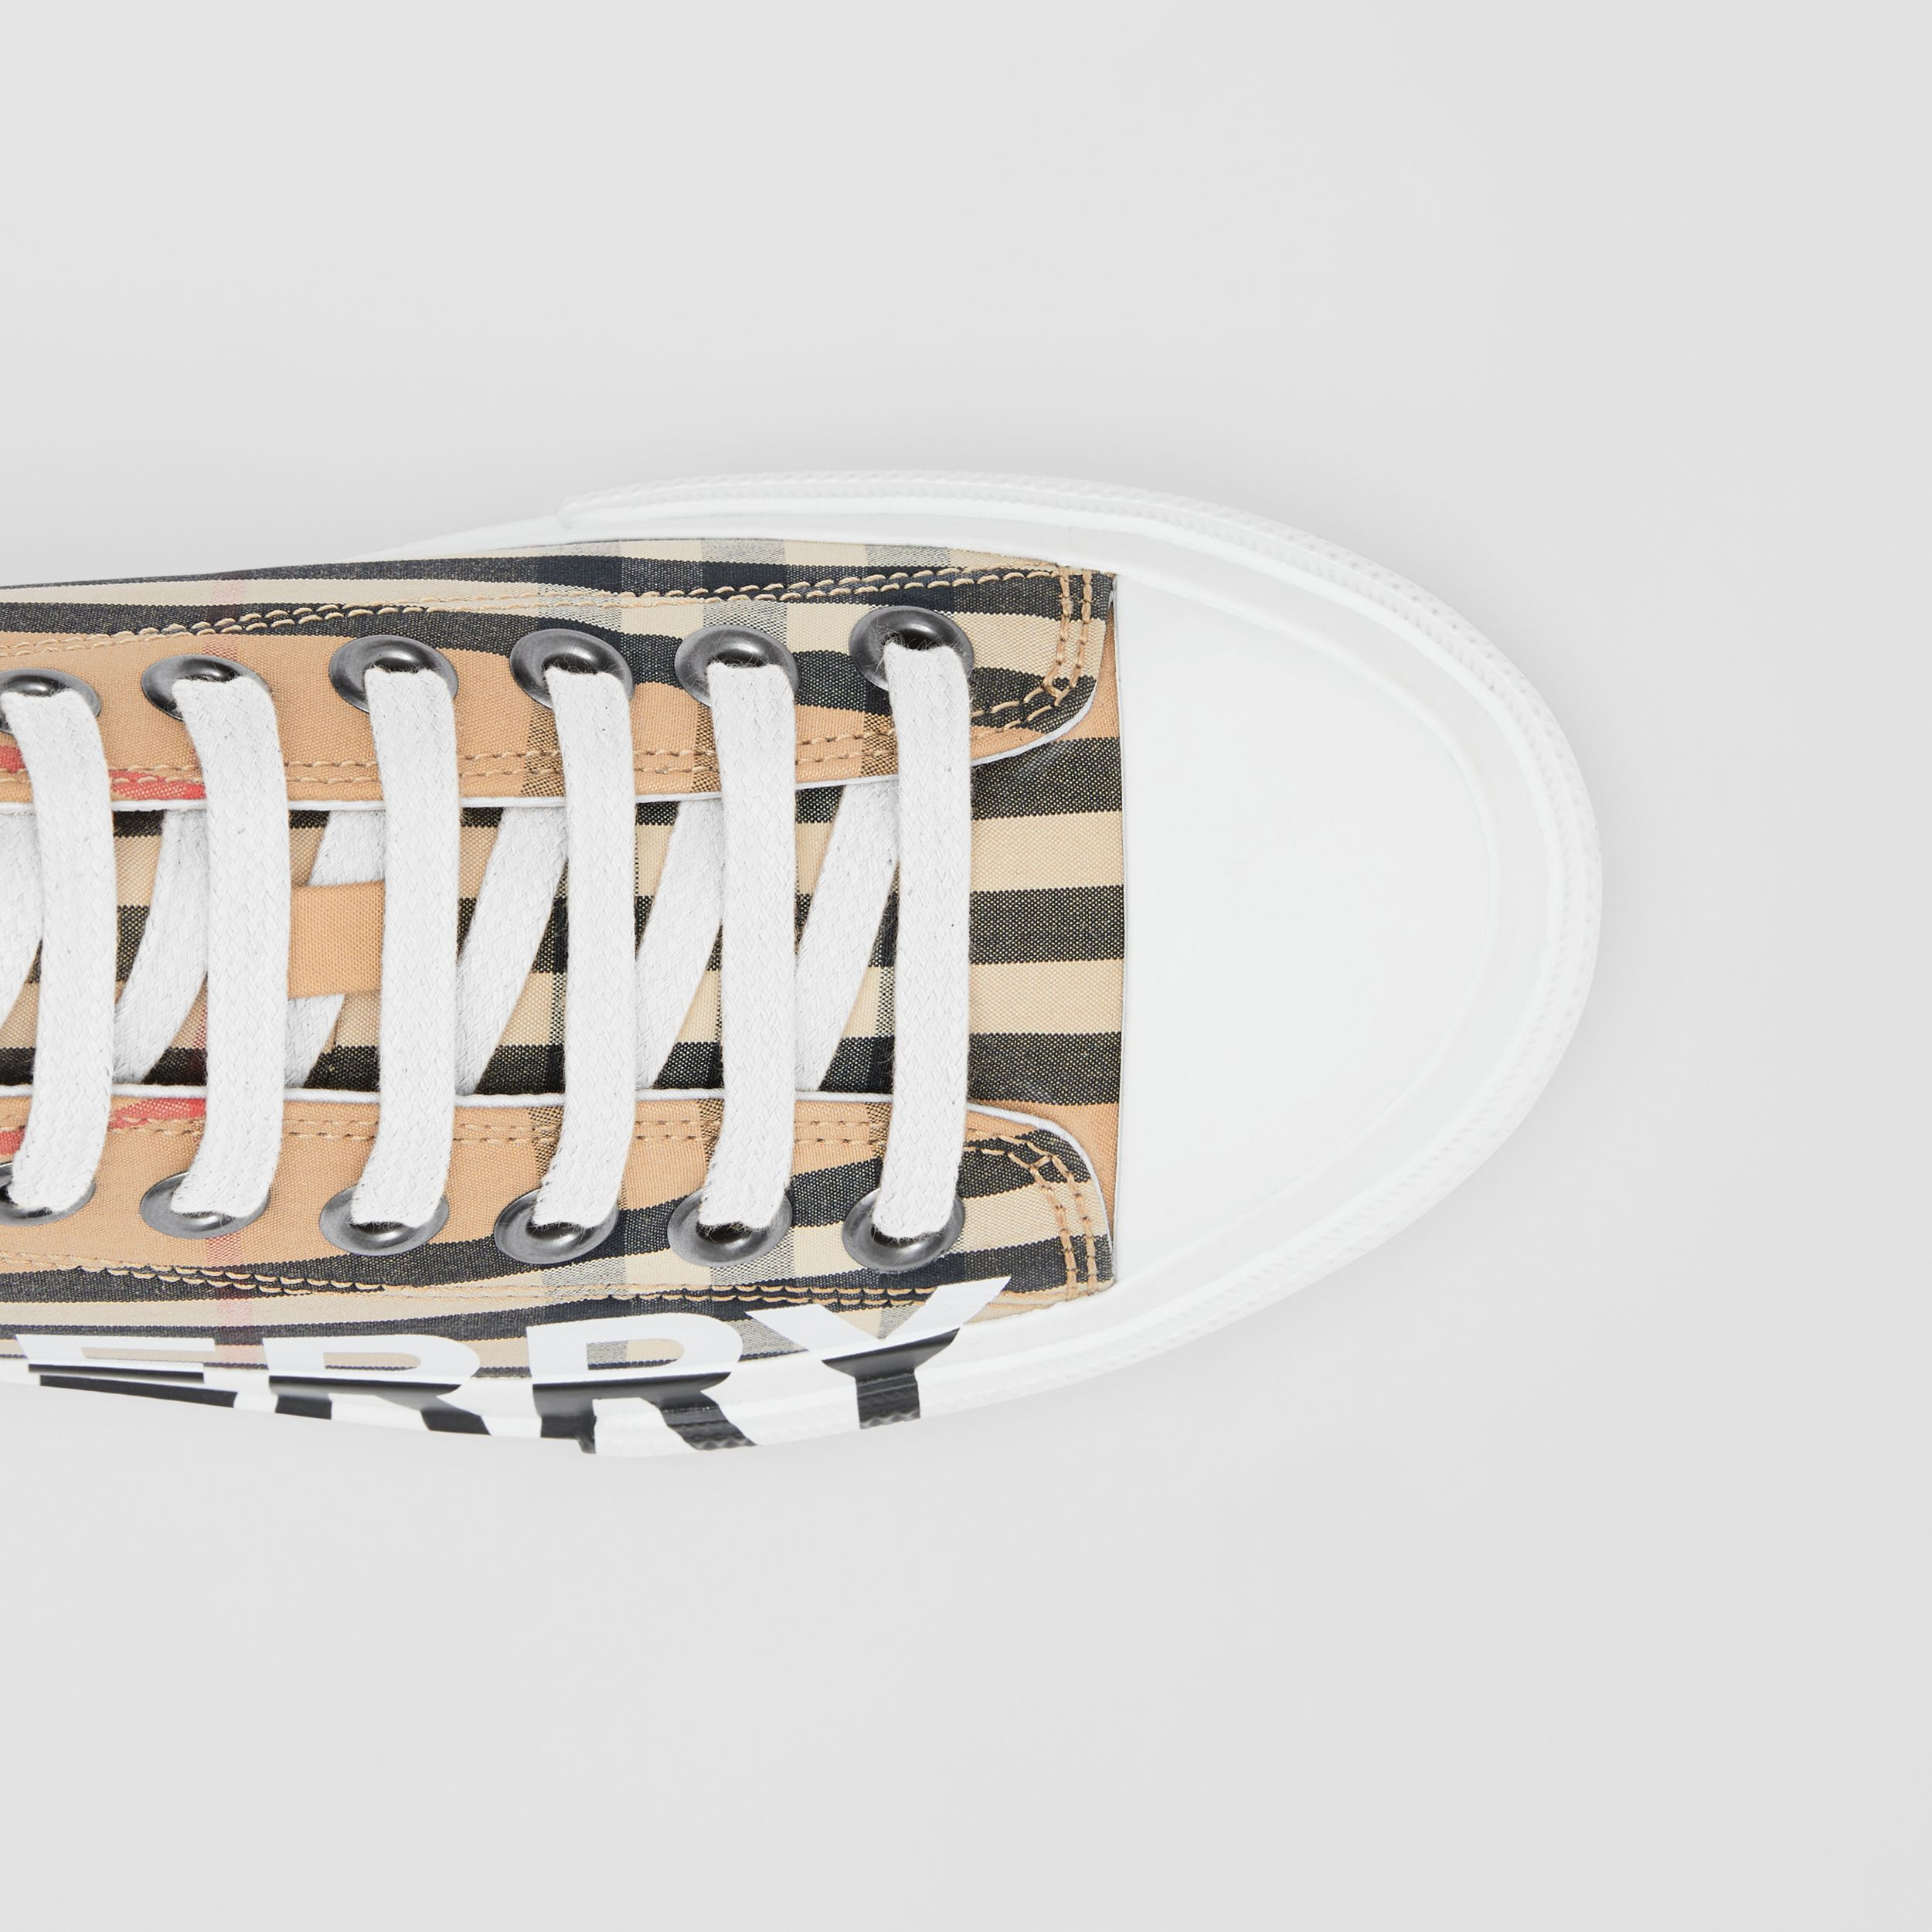 Logo Print Vintage Check Cotton Sneakers in Archive Beige - Women | Burberry United Kingdom - 2